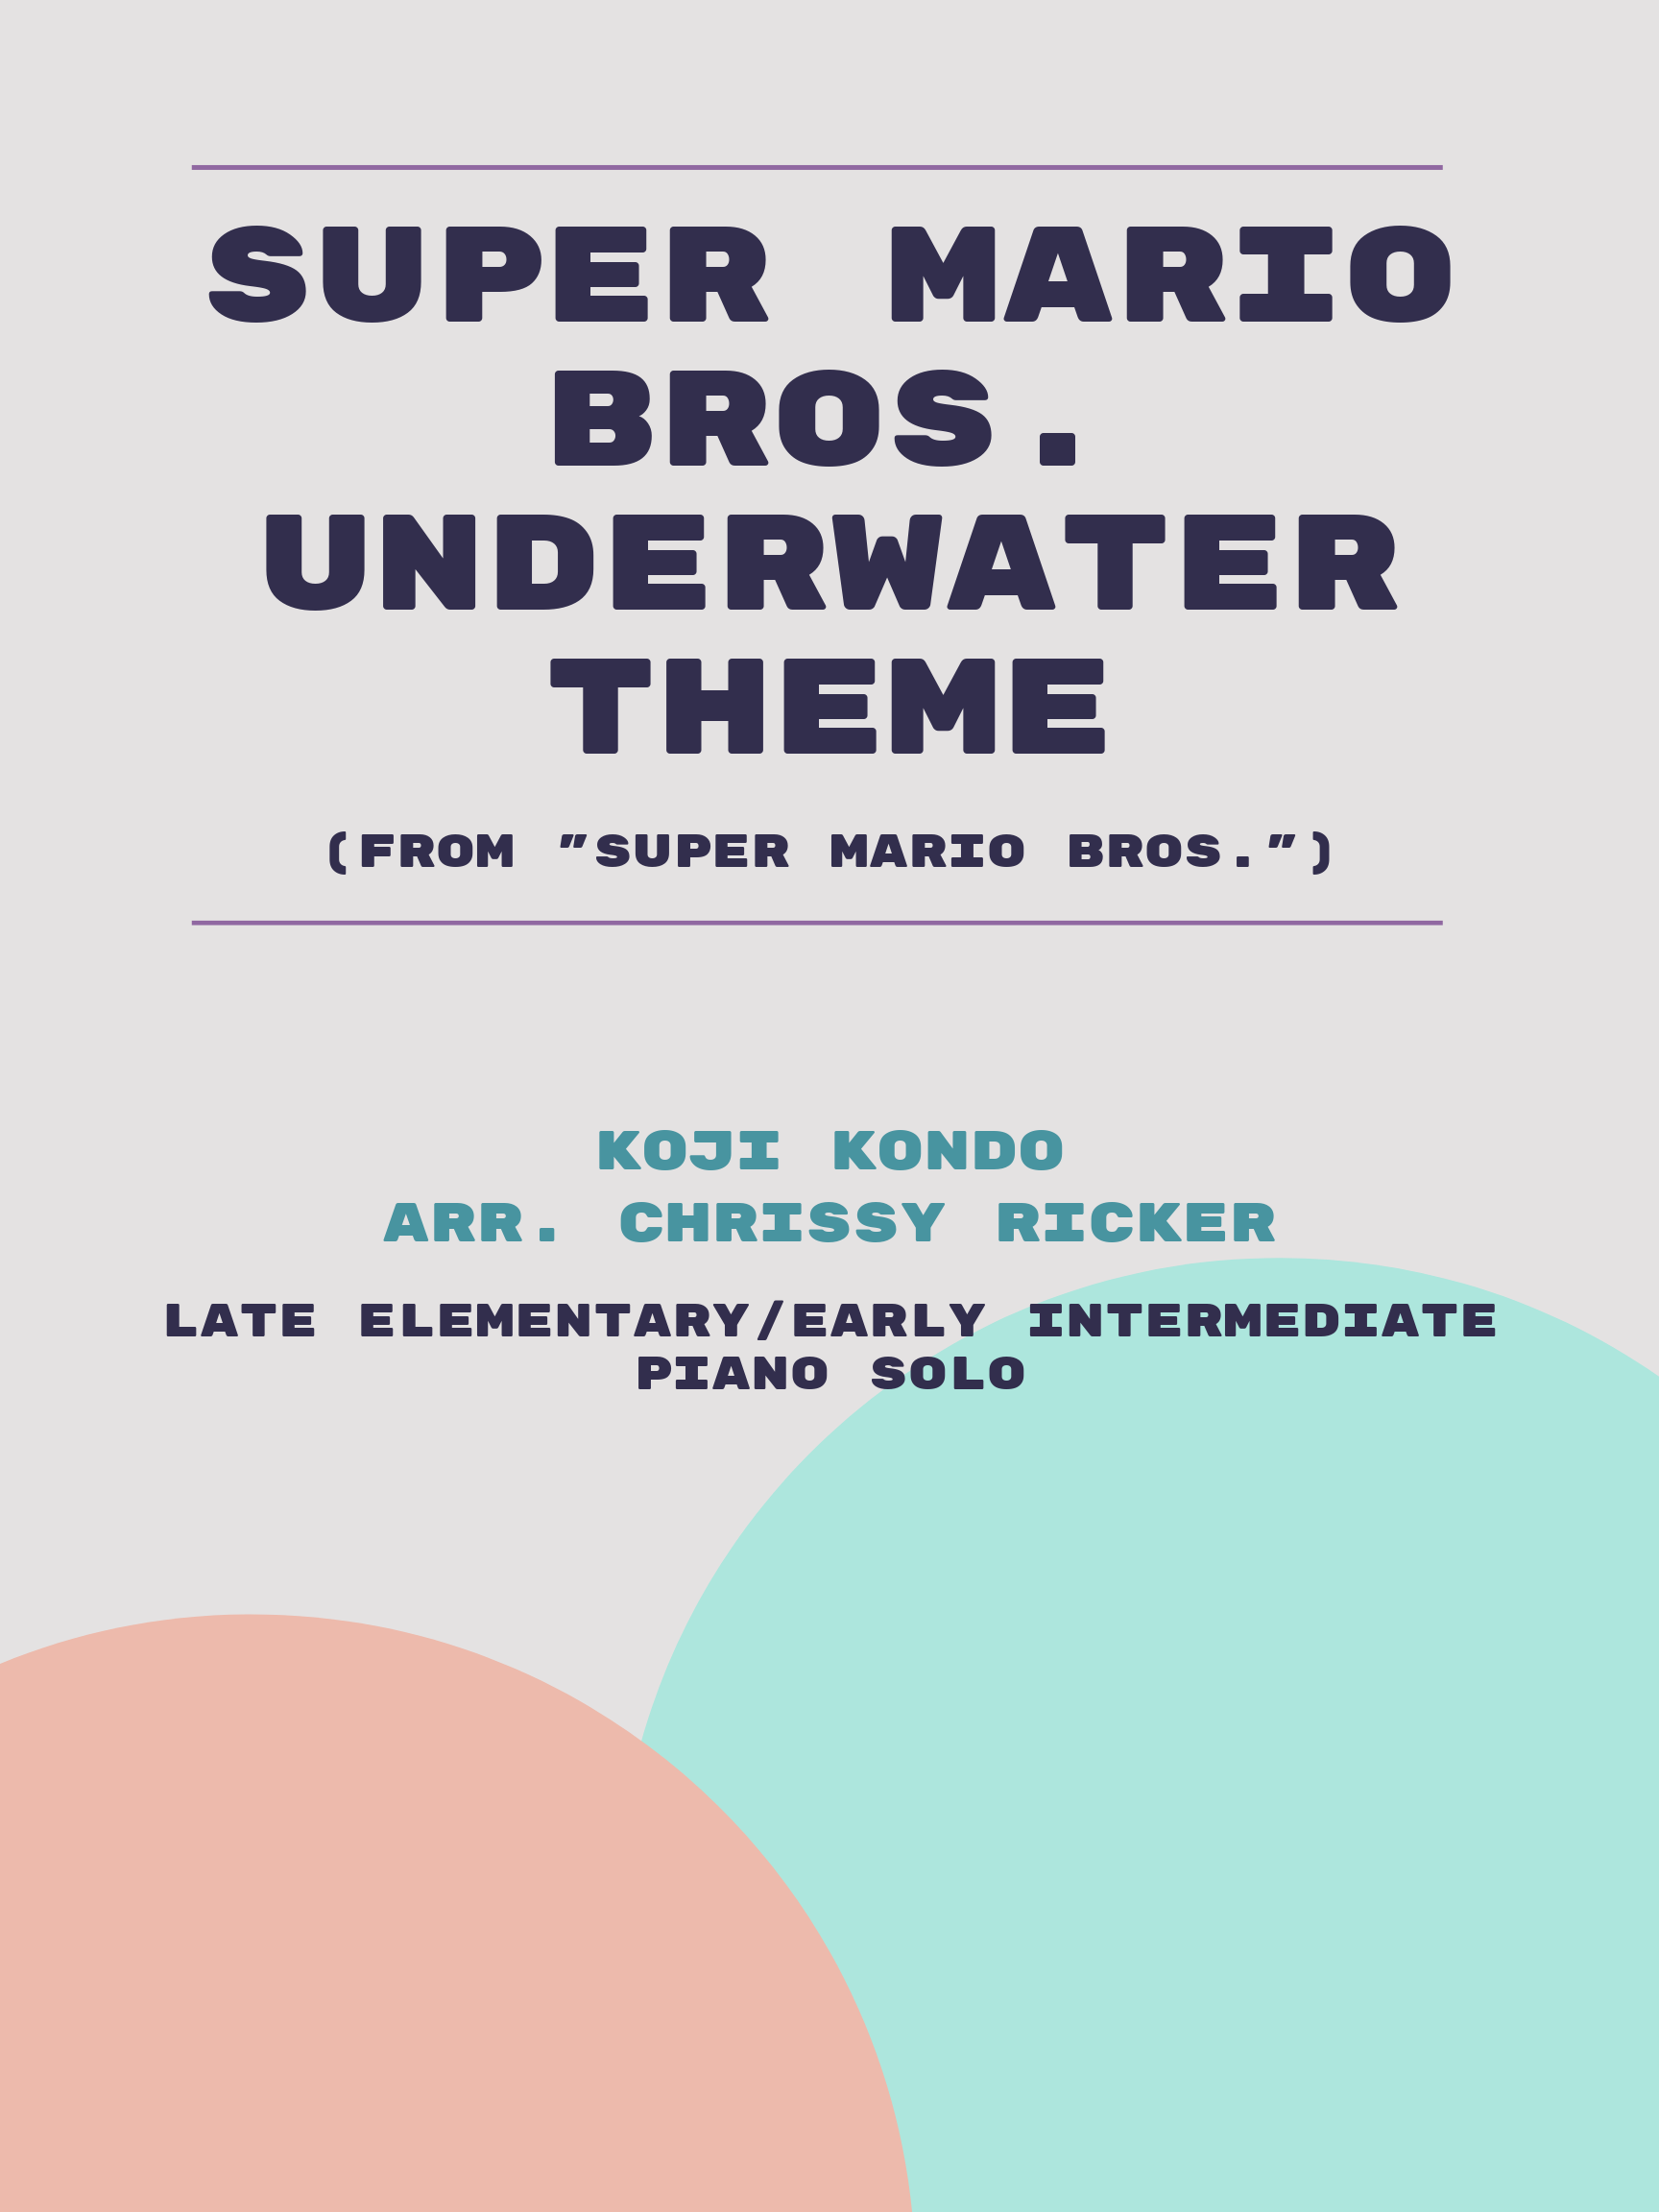 Super Mario Bros. Underwater Theme by Koji Kondo